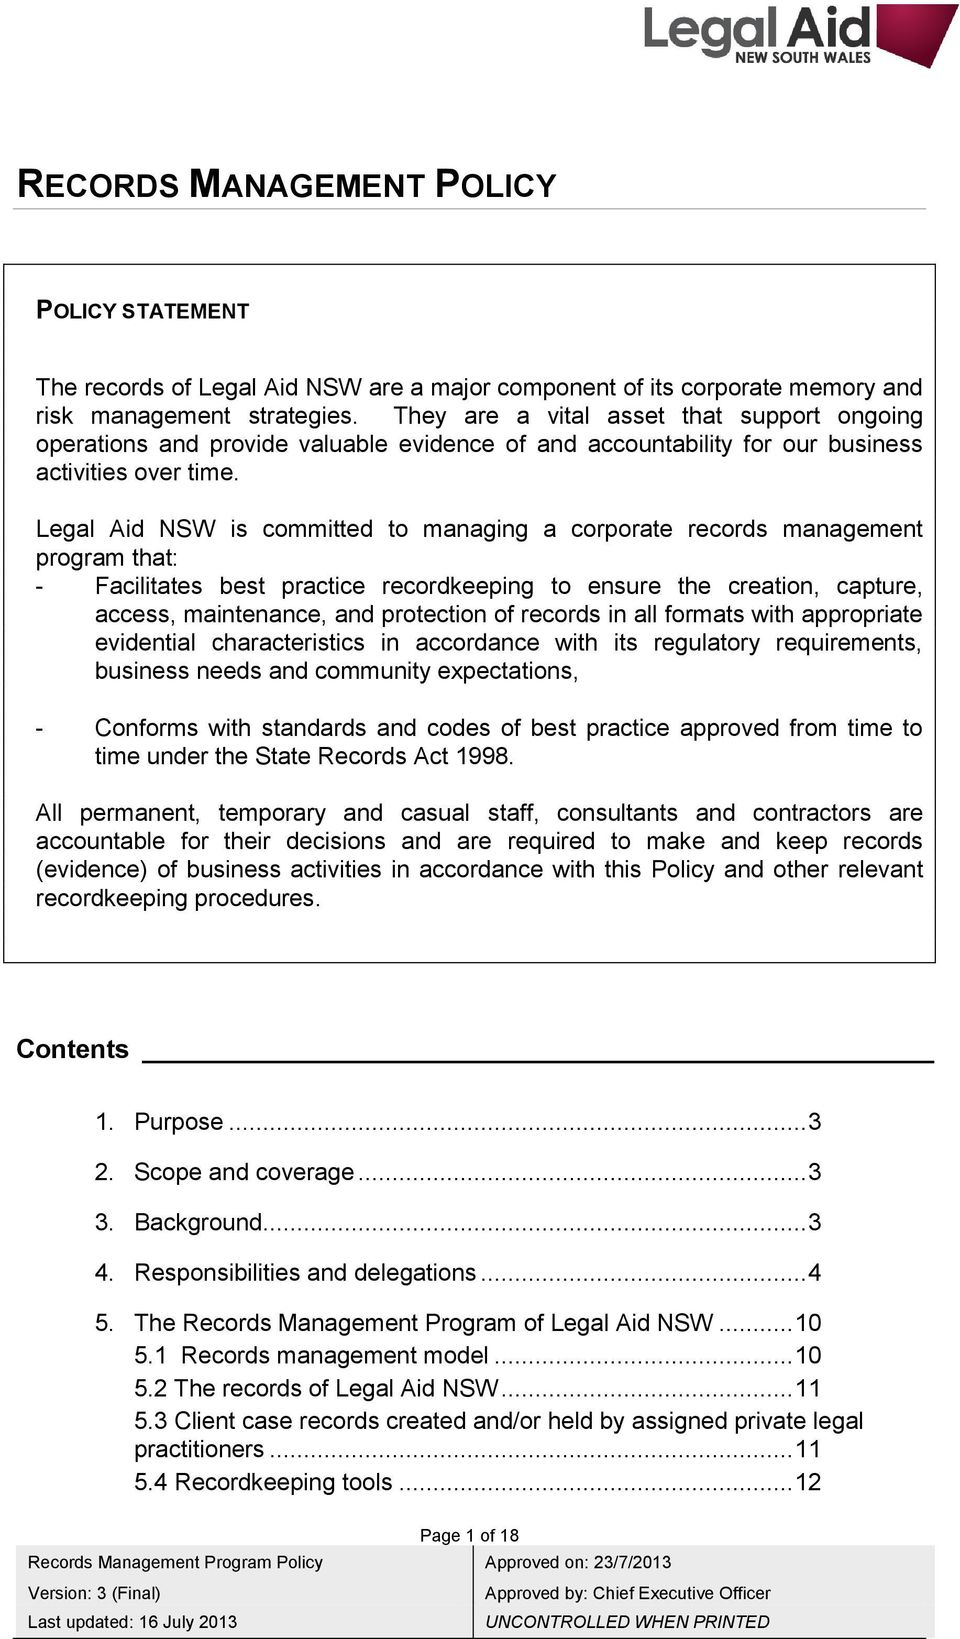 Legal Aid NSW is committed to managing a corporate records management program that: - Facilitates best practice recordkeeping to ensure the creation, capture, access, maintenance, and protection of